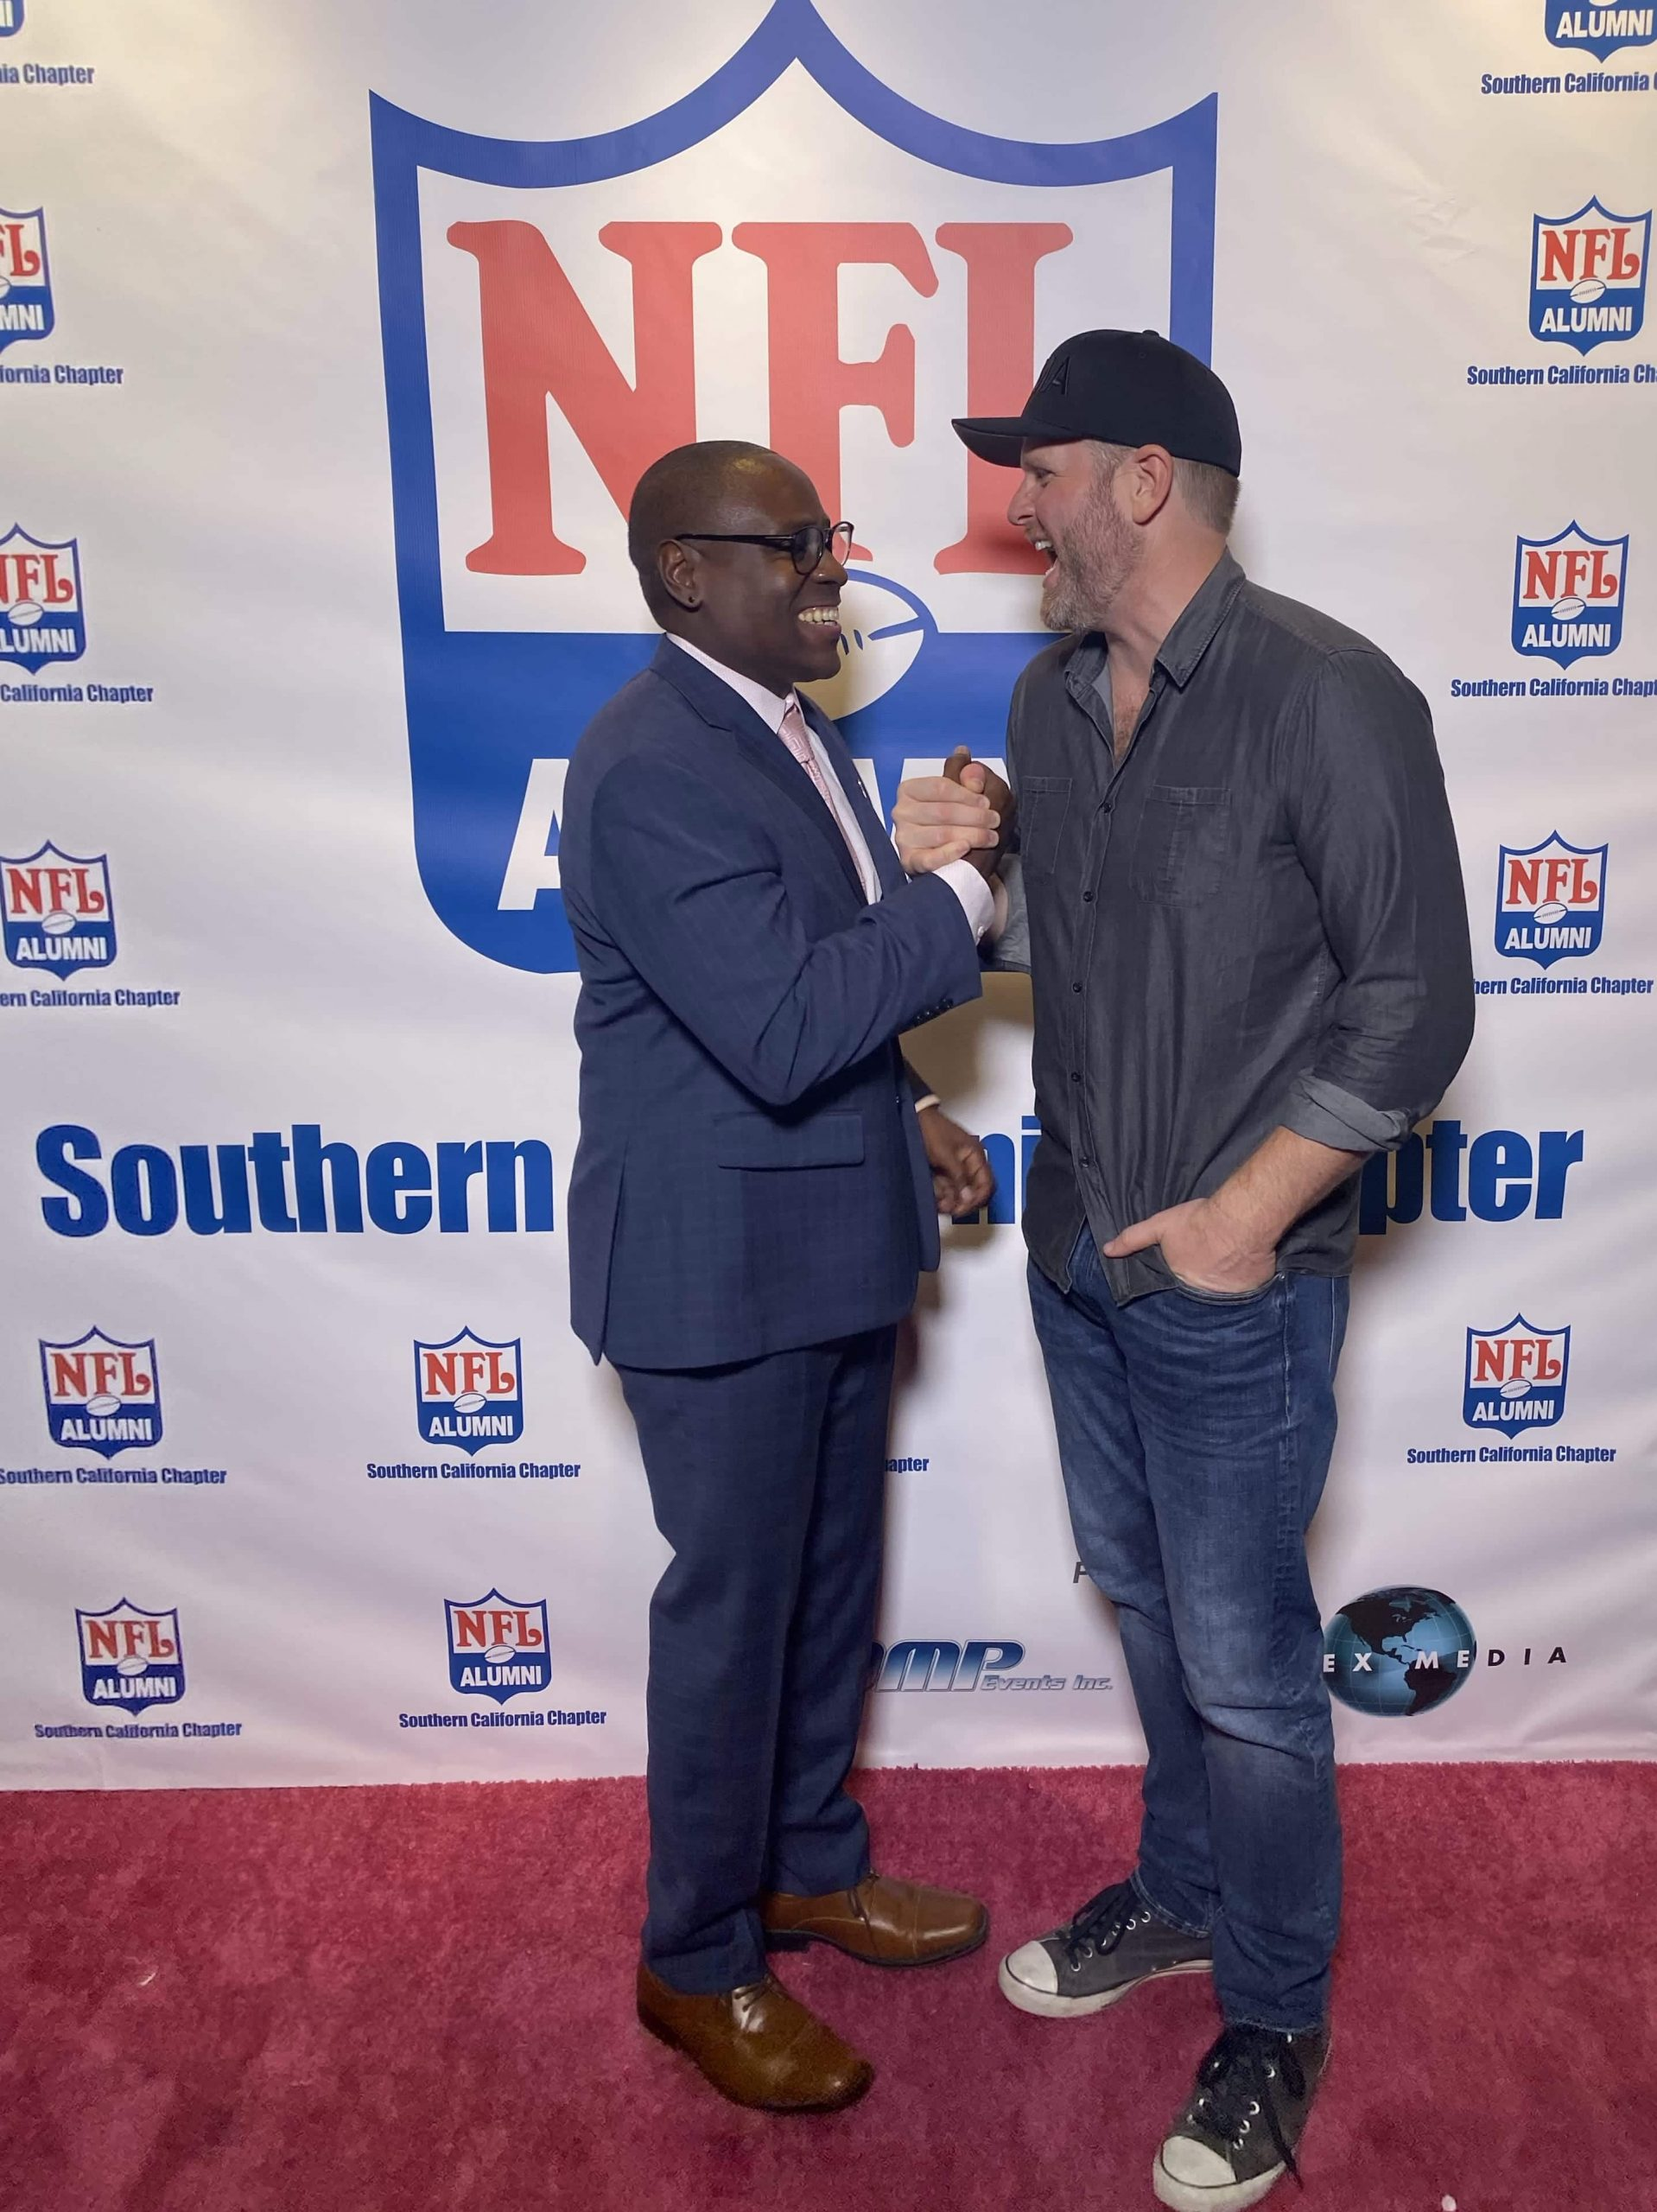 NFL Alumni SoCal Charity Event Series Breast Cancer Event 10-14-19-332